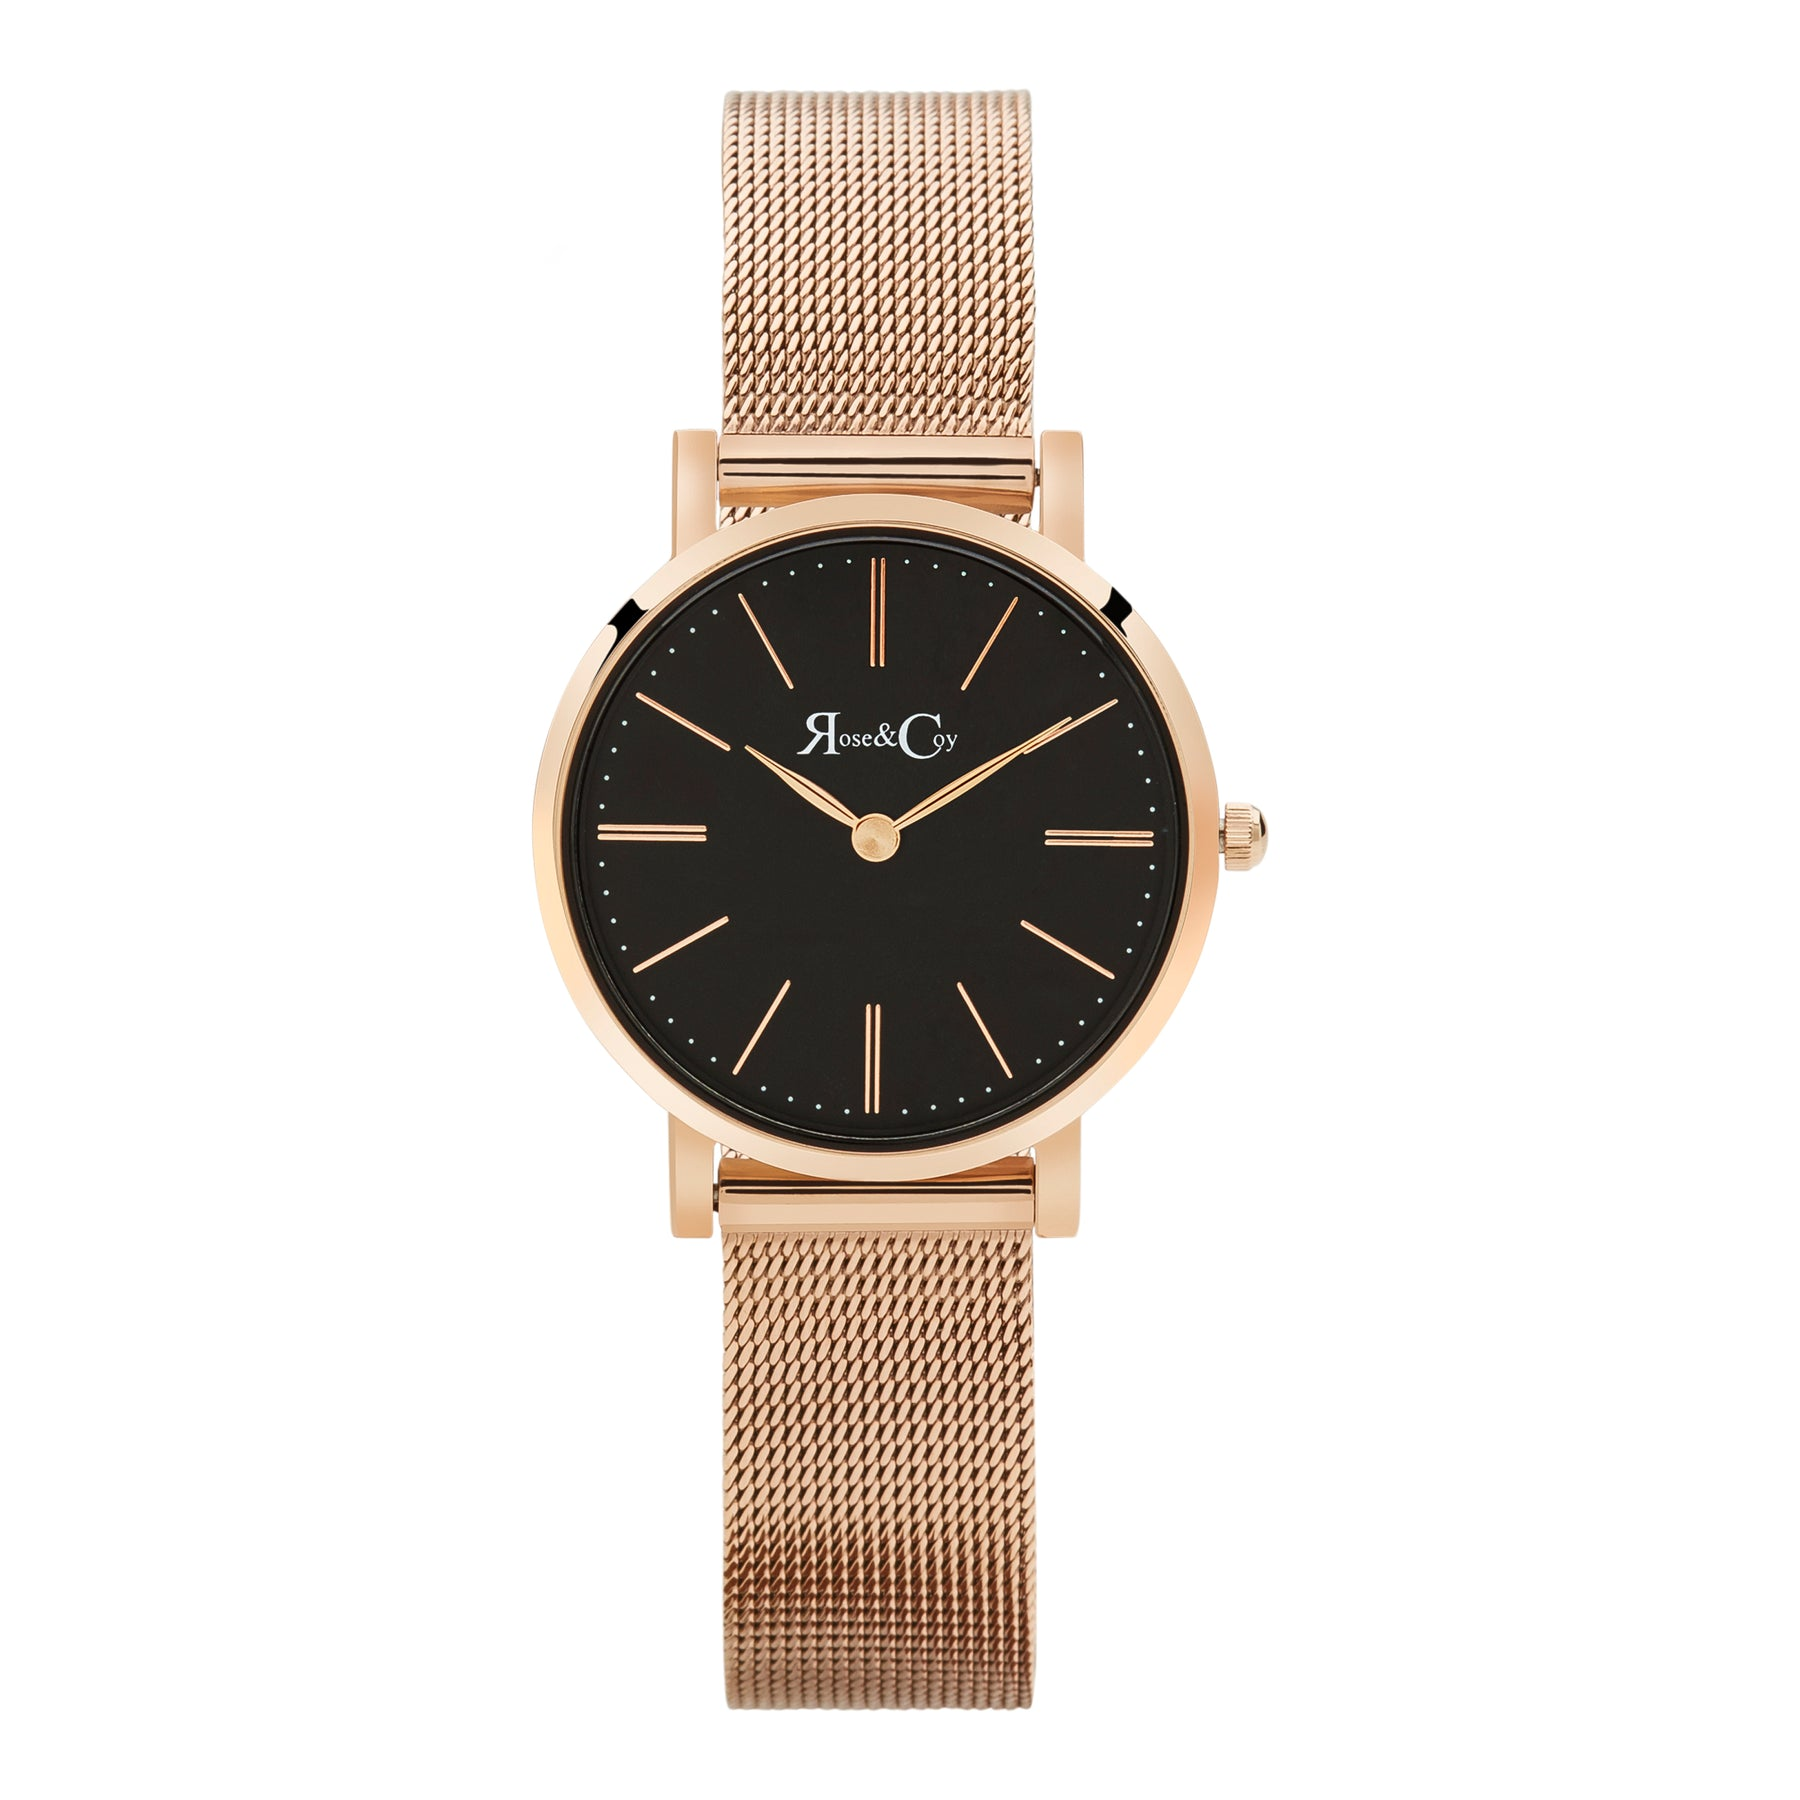 Petite Pinnacle Ultra Slim 30mm Rose Gold Black Dial | Mesh Strap Watch